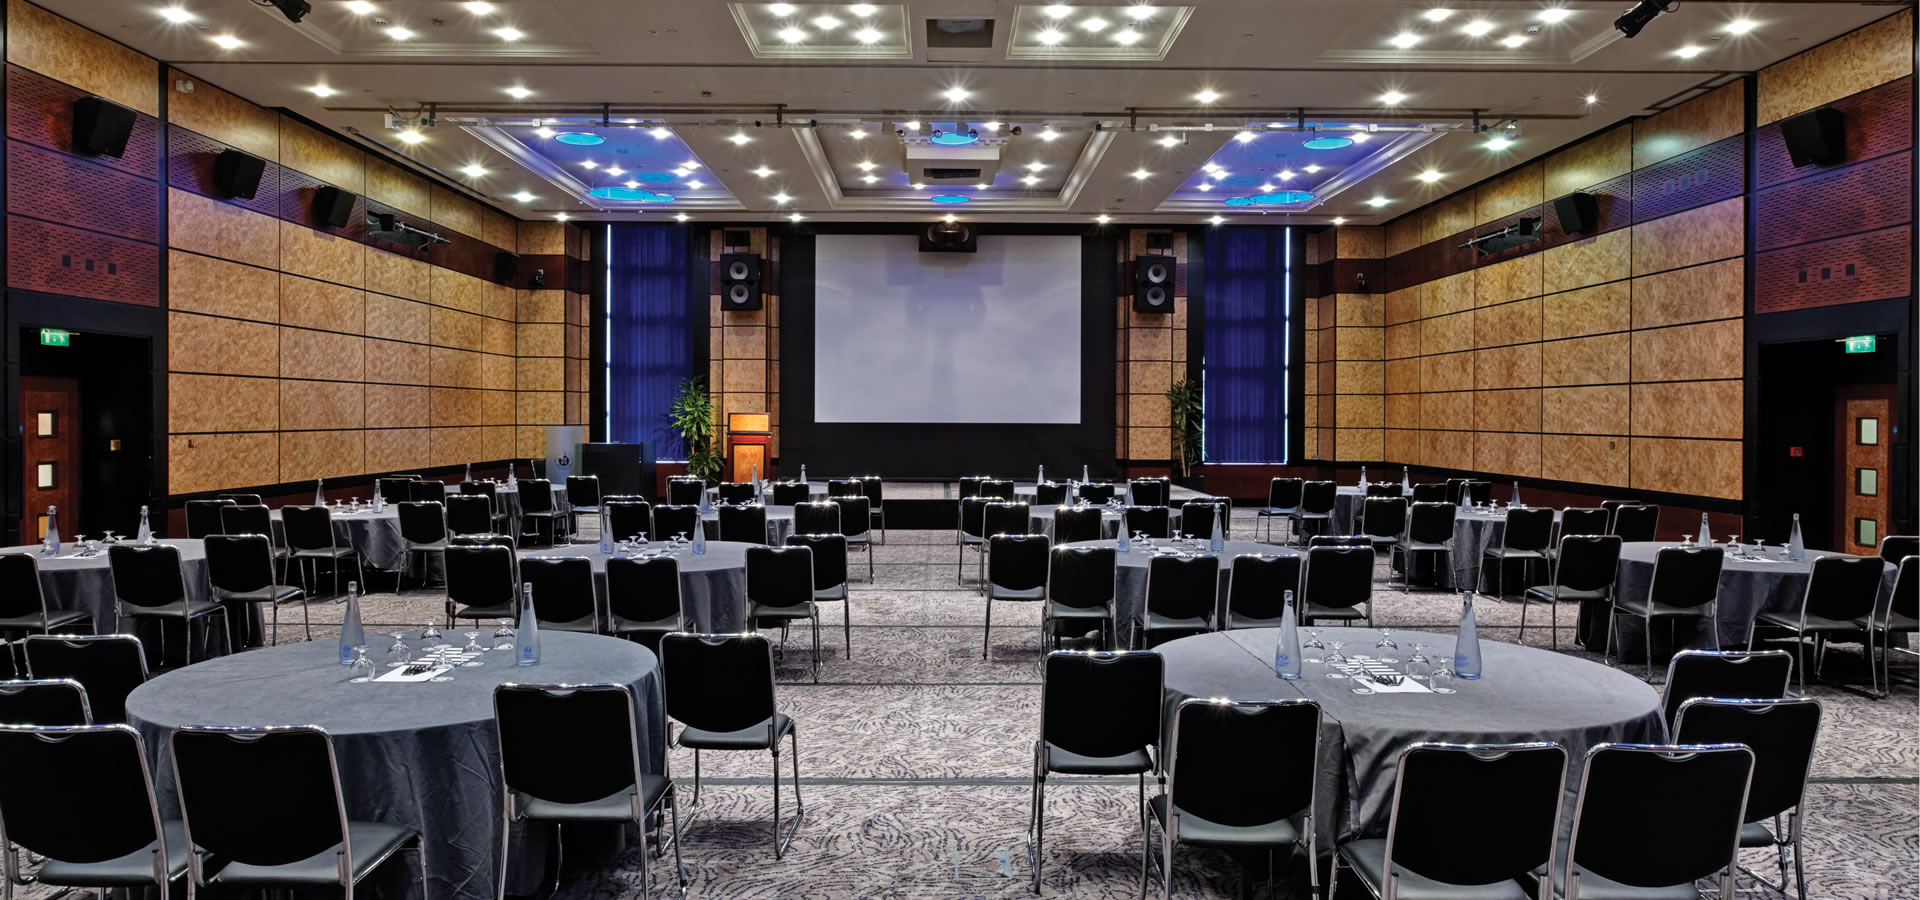 Meeting Room Amp Conference Centre In Central London